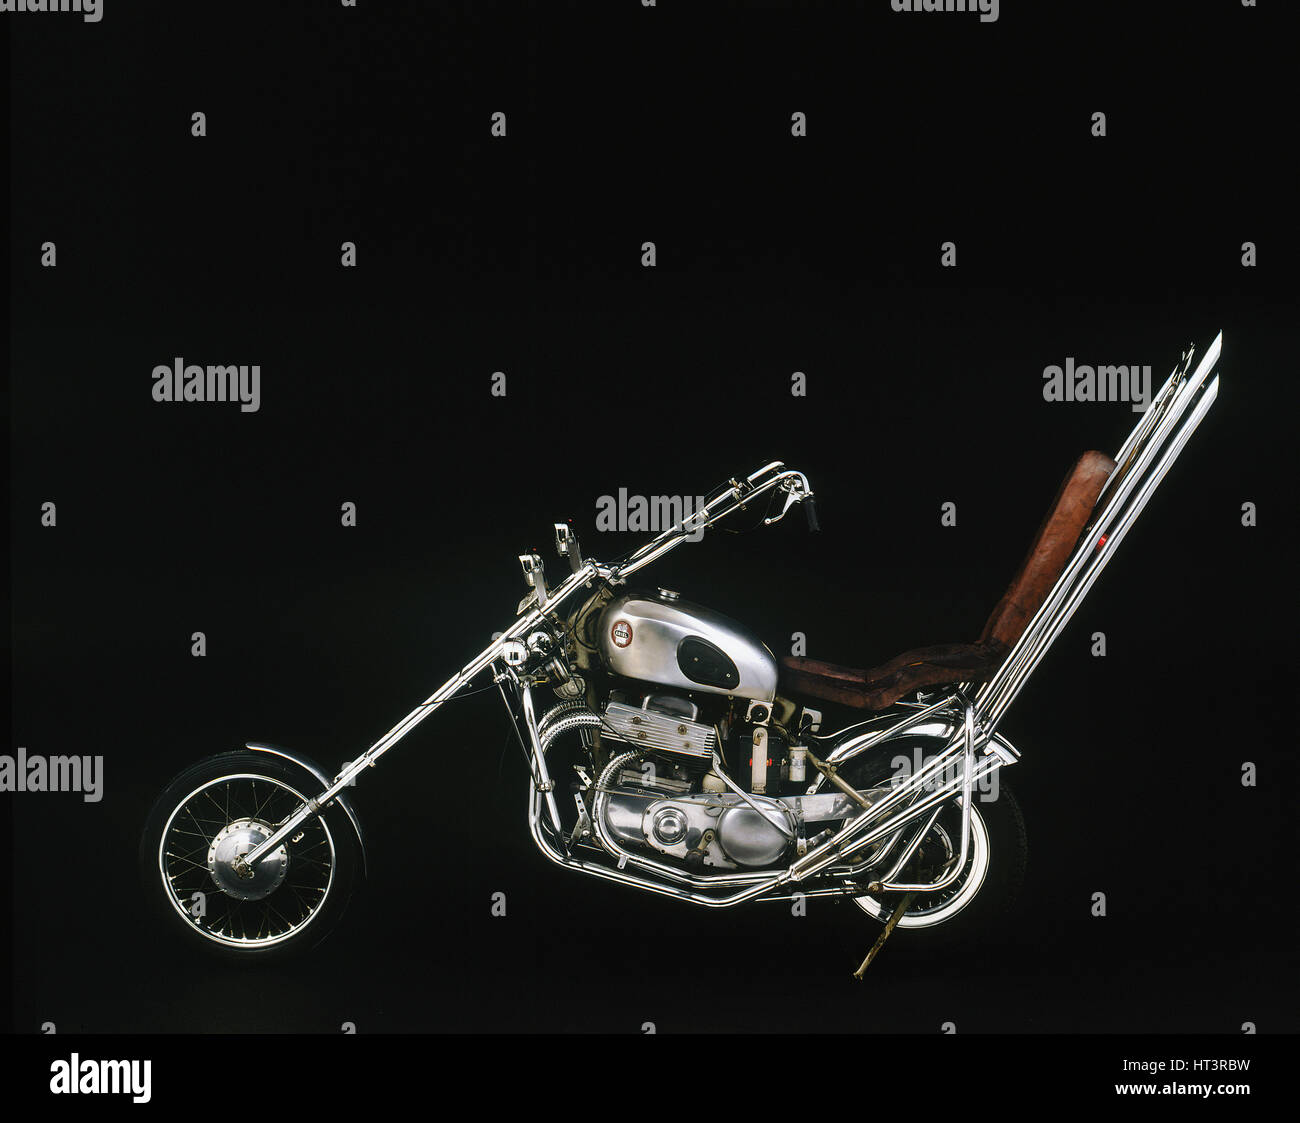 1959 Ariel Square 4 Chopper motorcycle Artist: Unknown. - Stock Image